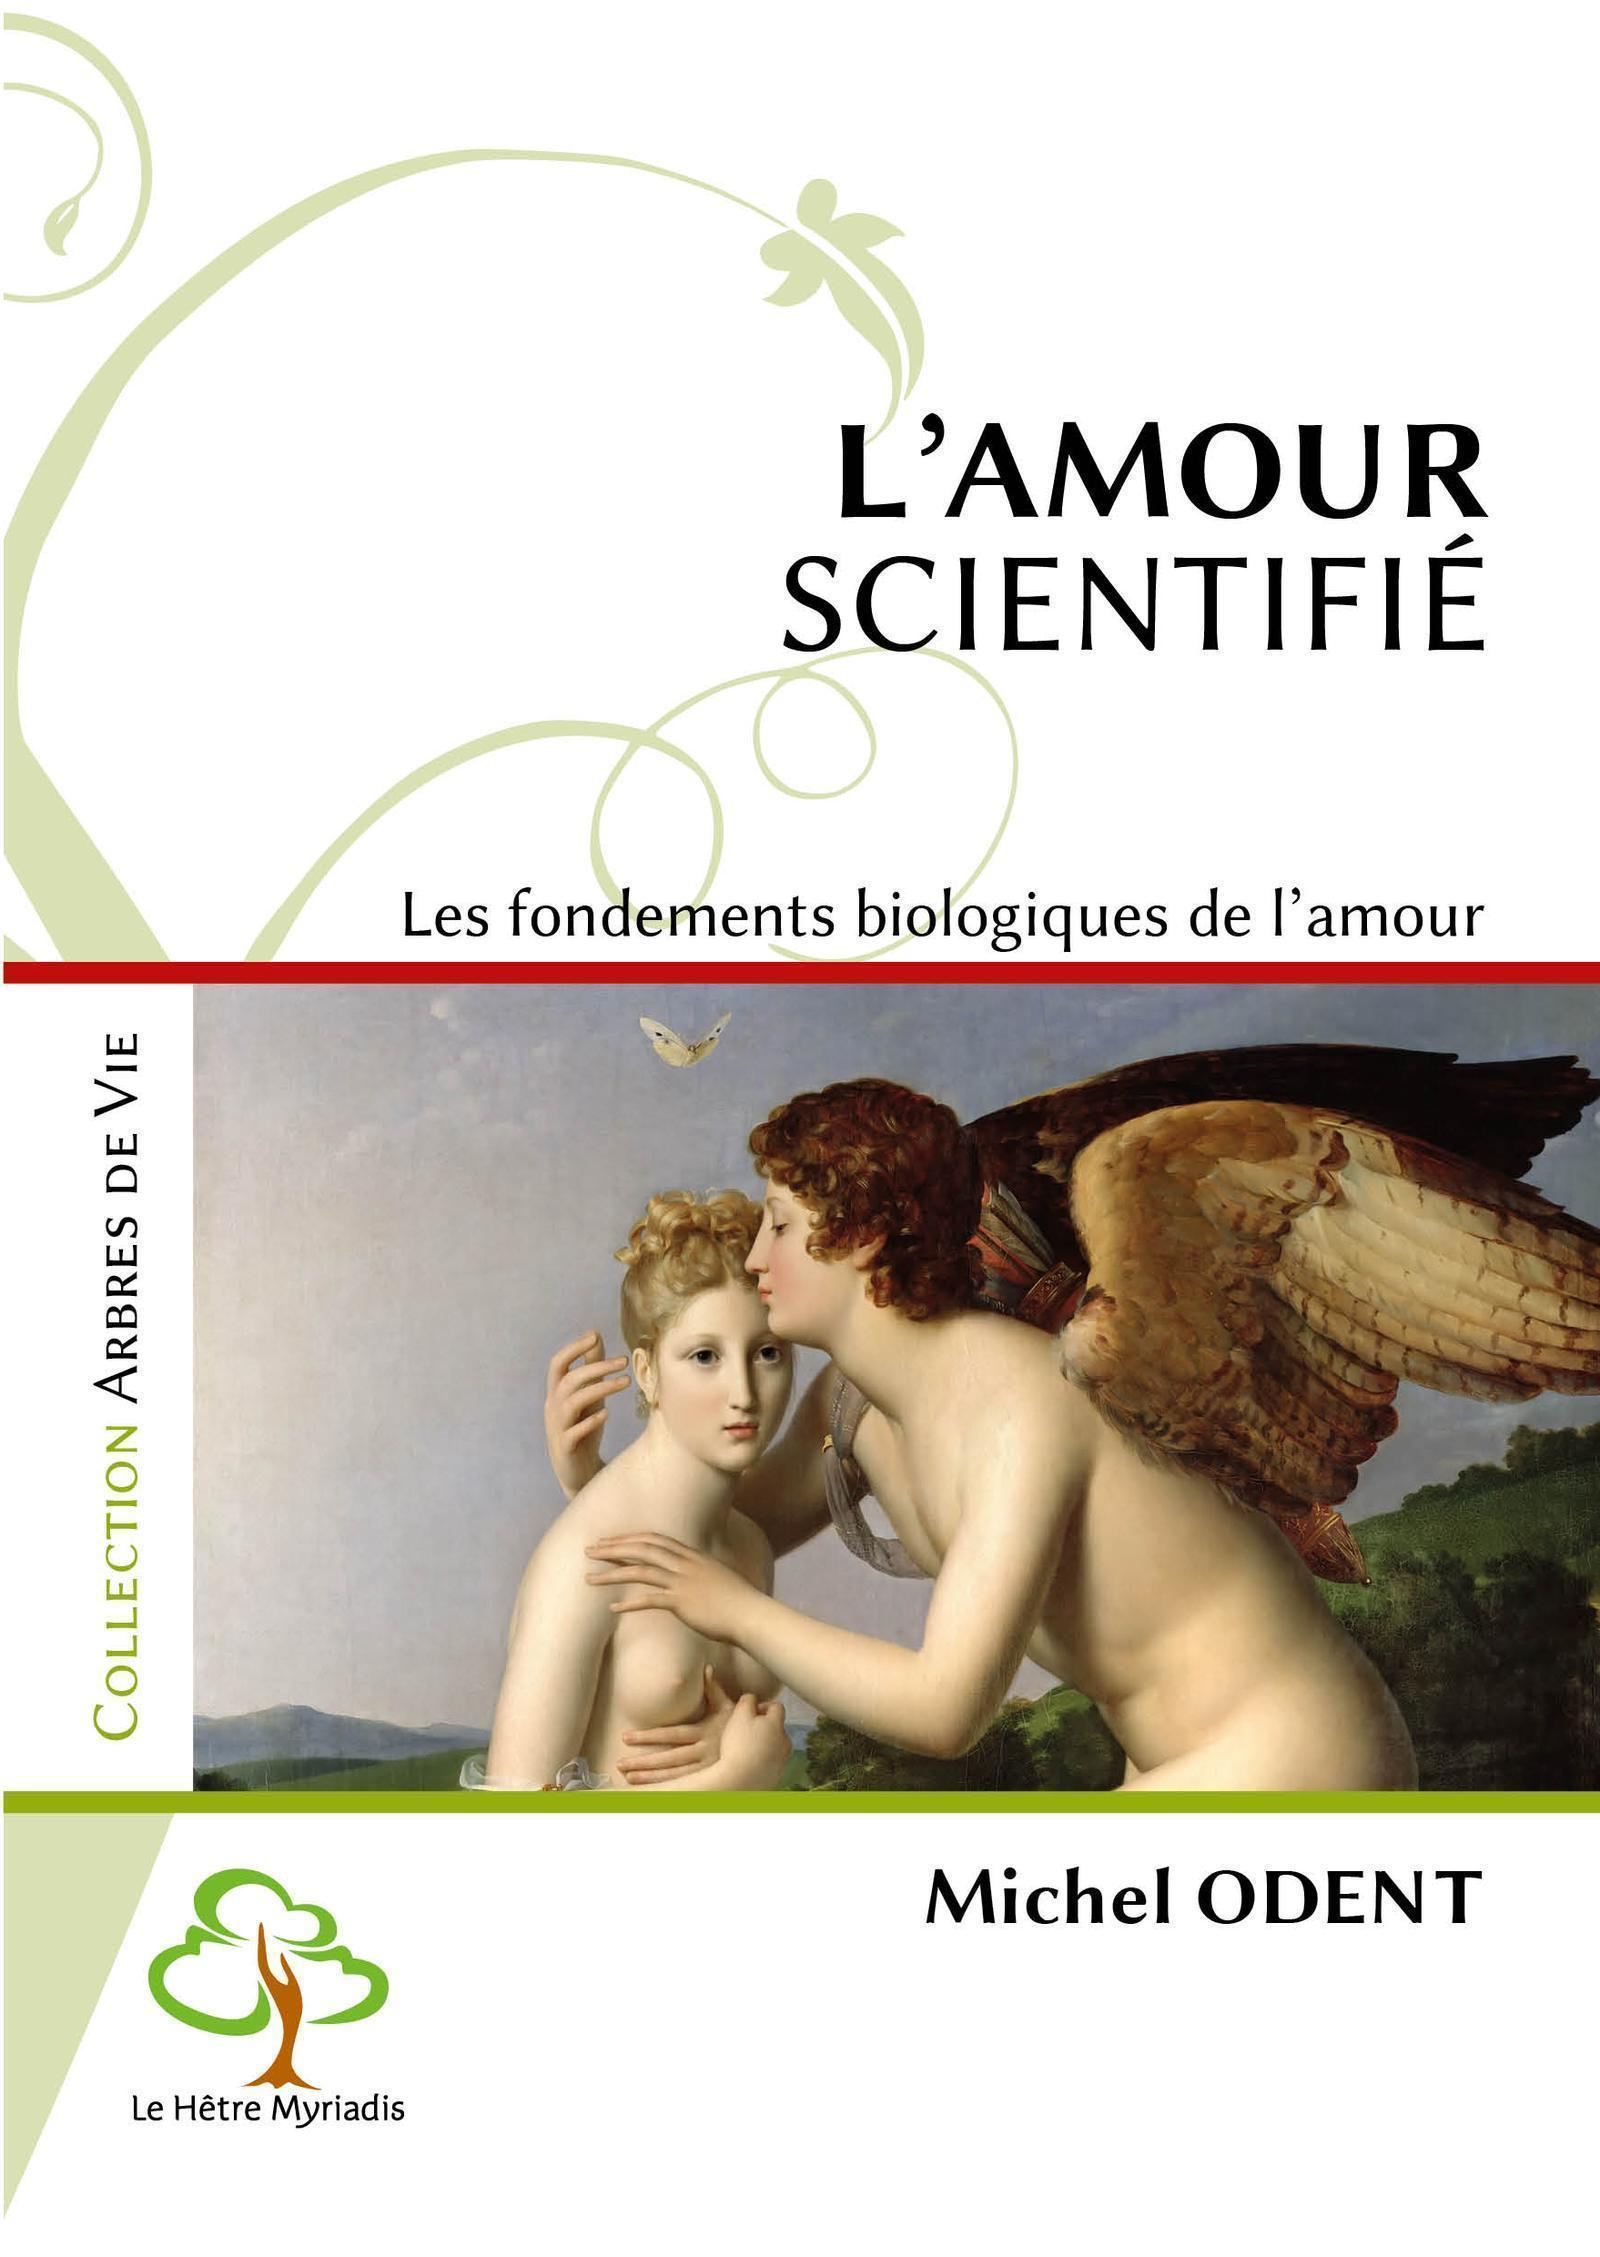 L'AMOUR SCIENTIFIE